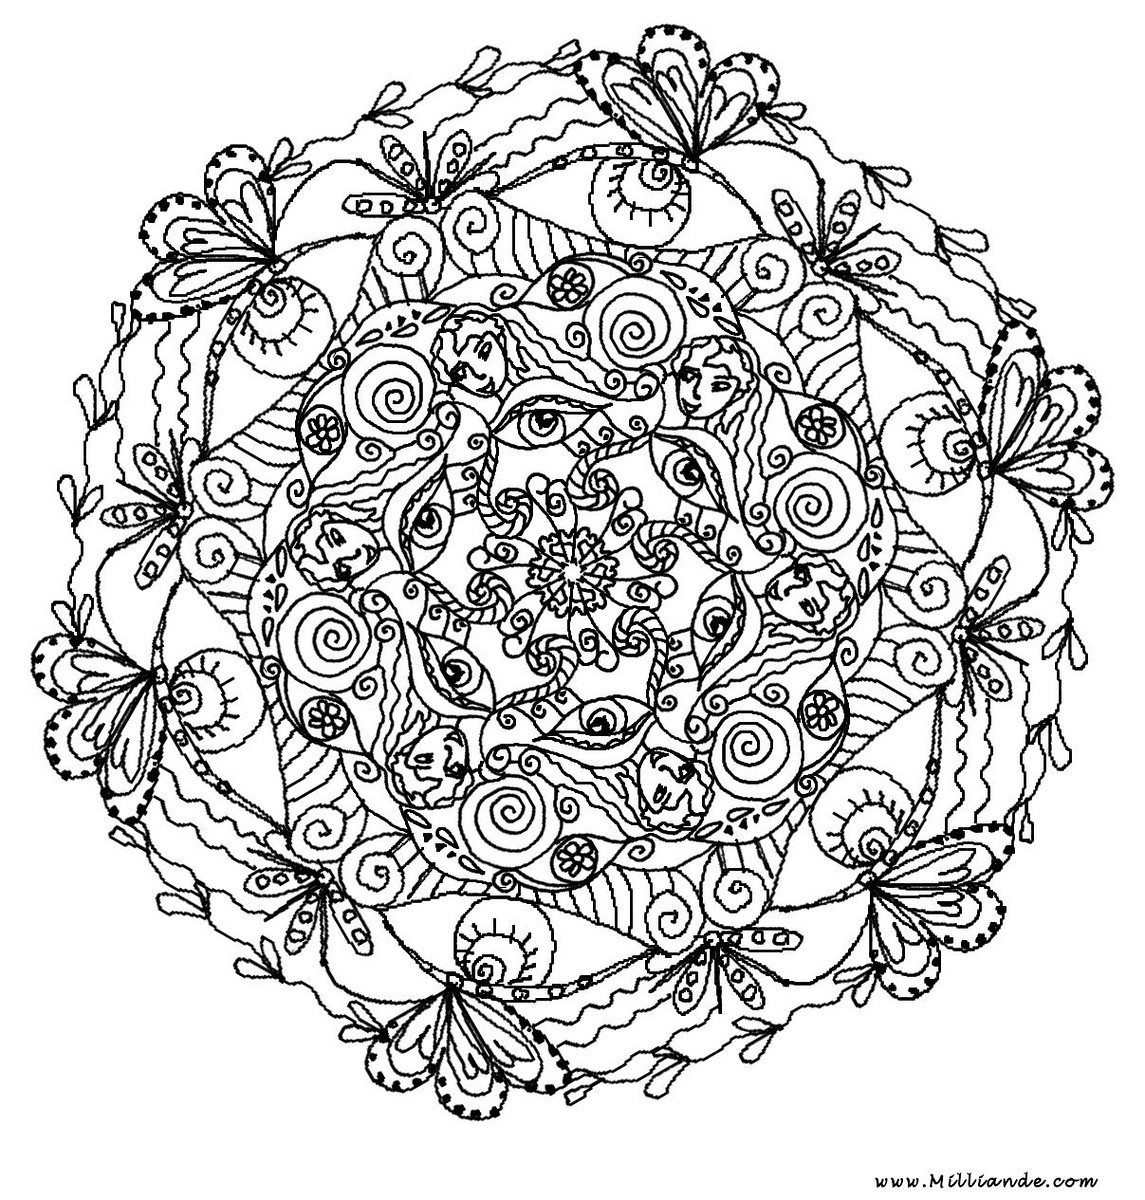 Free Printable Mandala Coloring Pages For Adults  Mindful Mandalas – juste etre just be